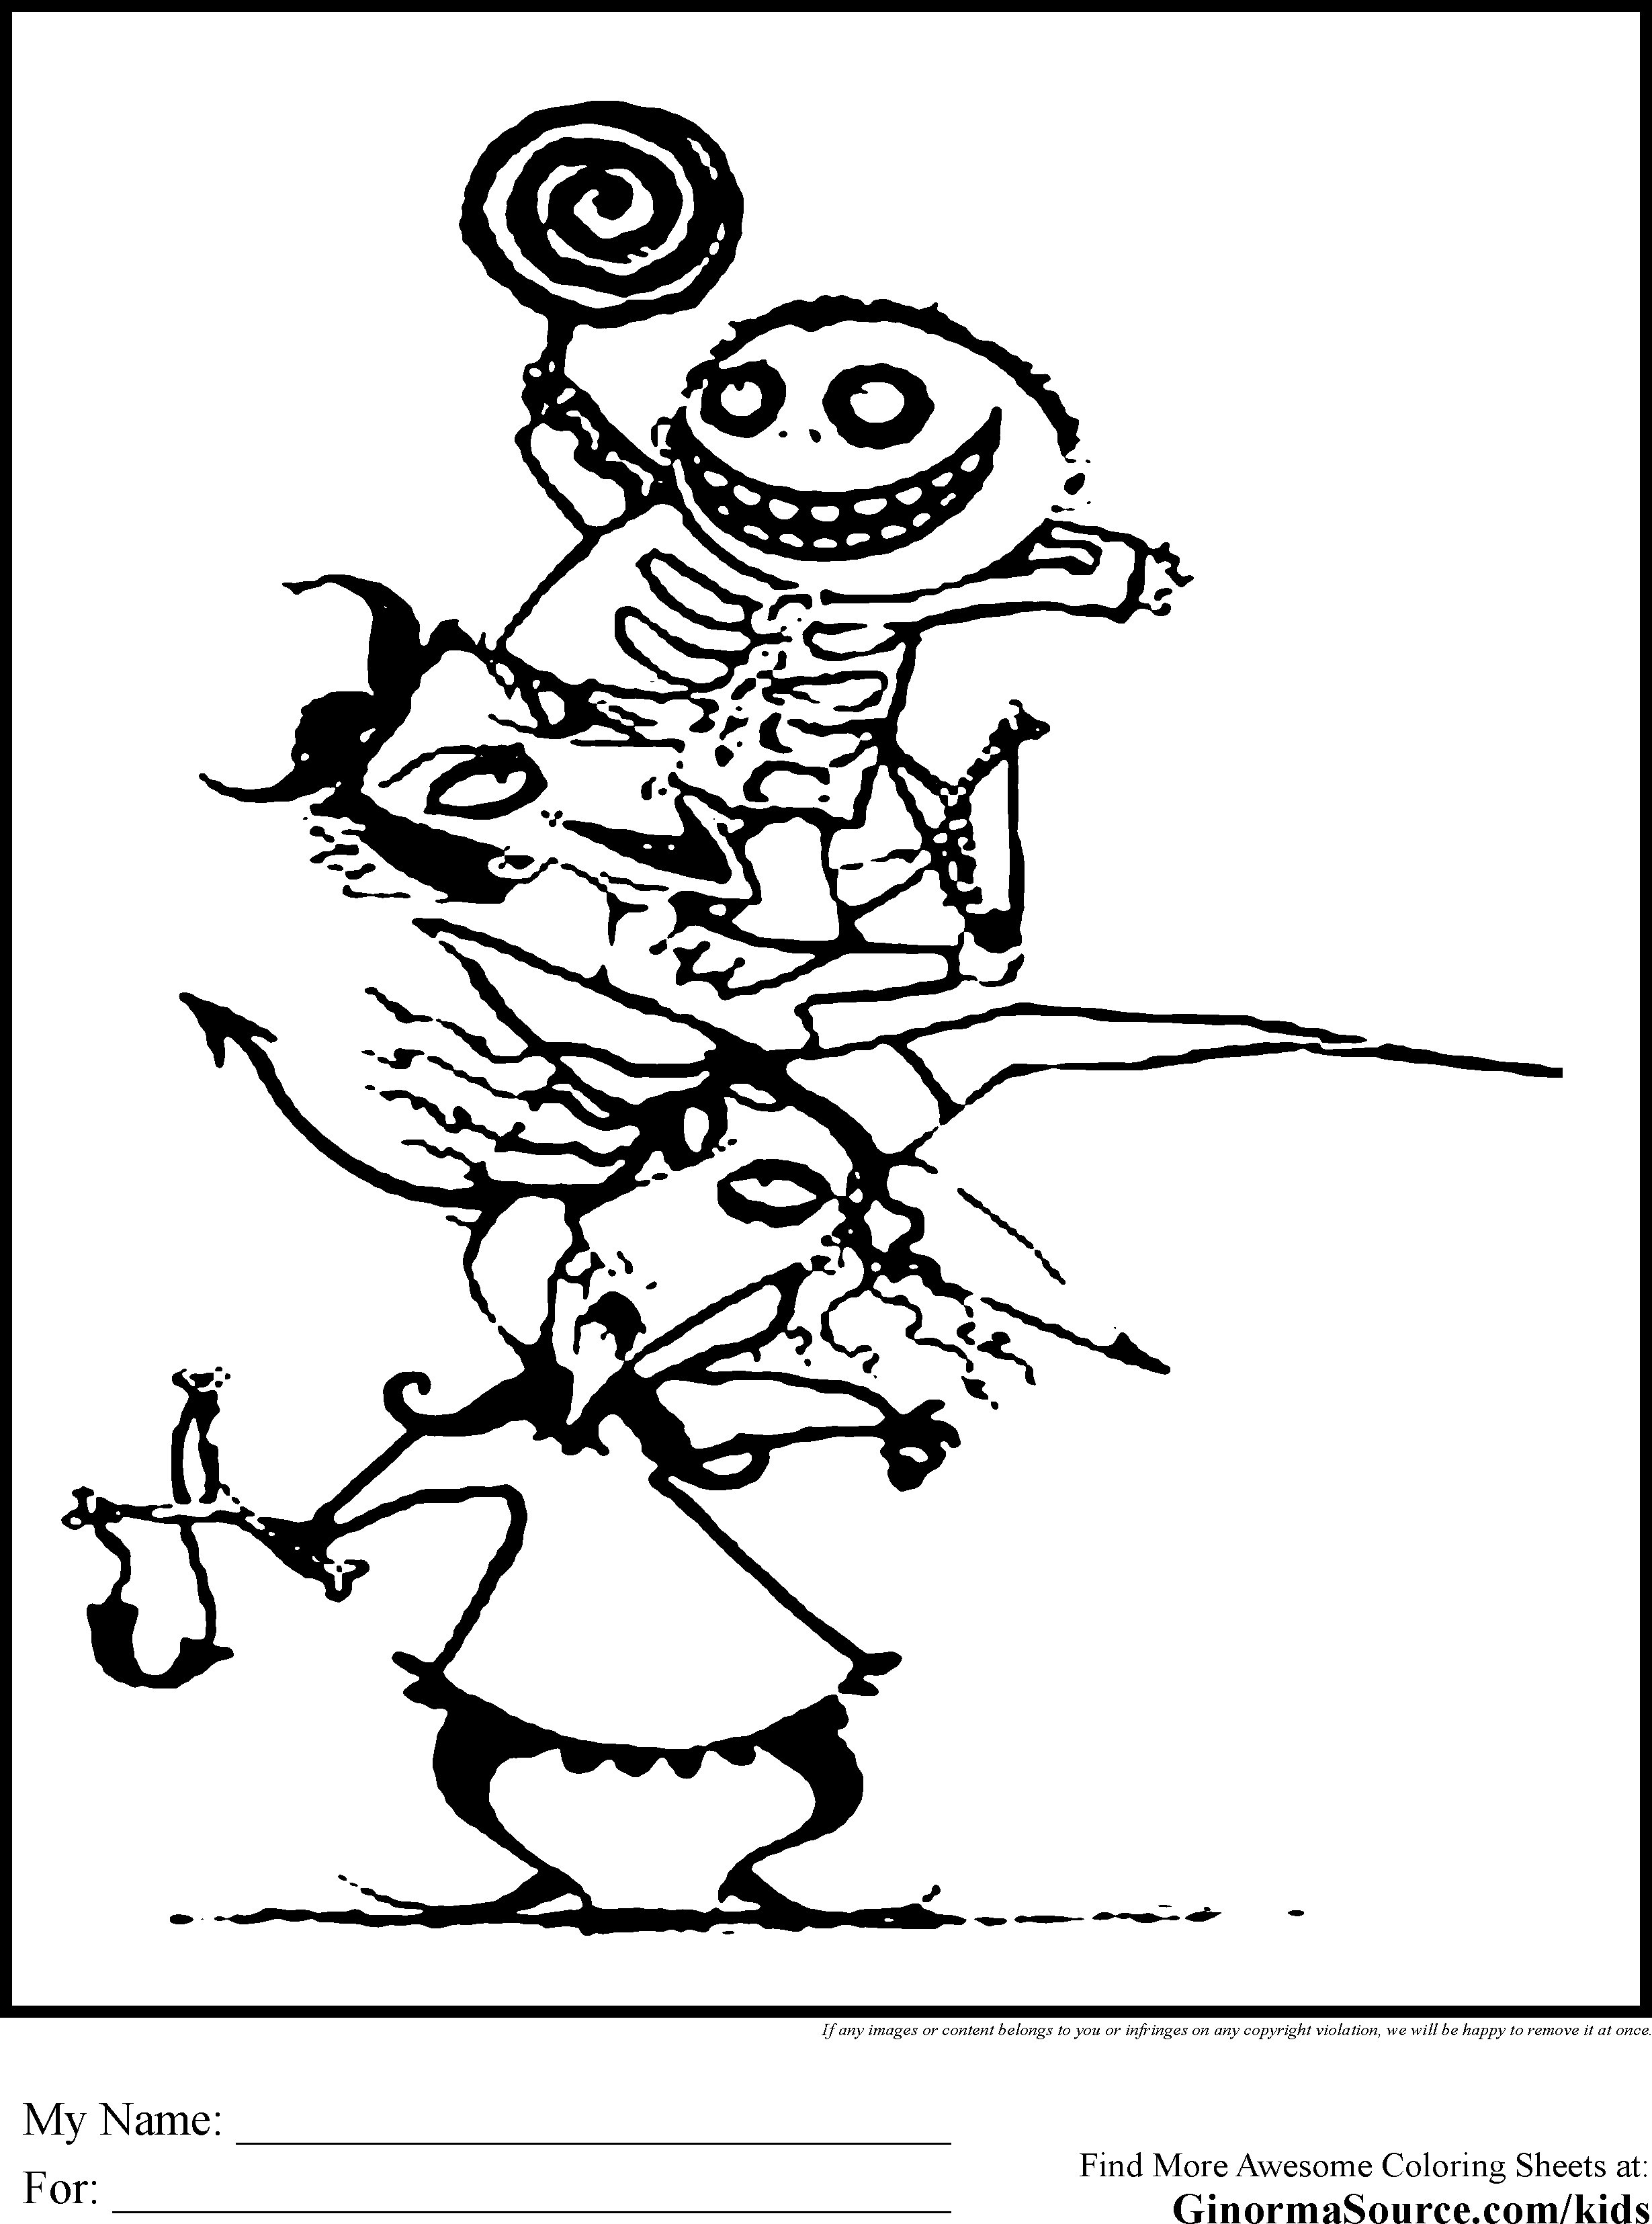 Nightmare-Before-Christmas-Coloring-Pages.gif (2459×3310) | Tim ...